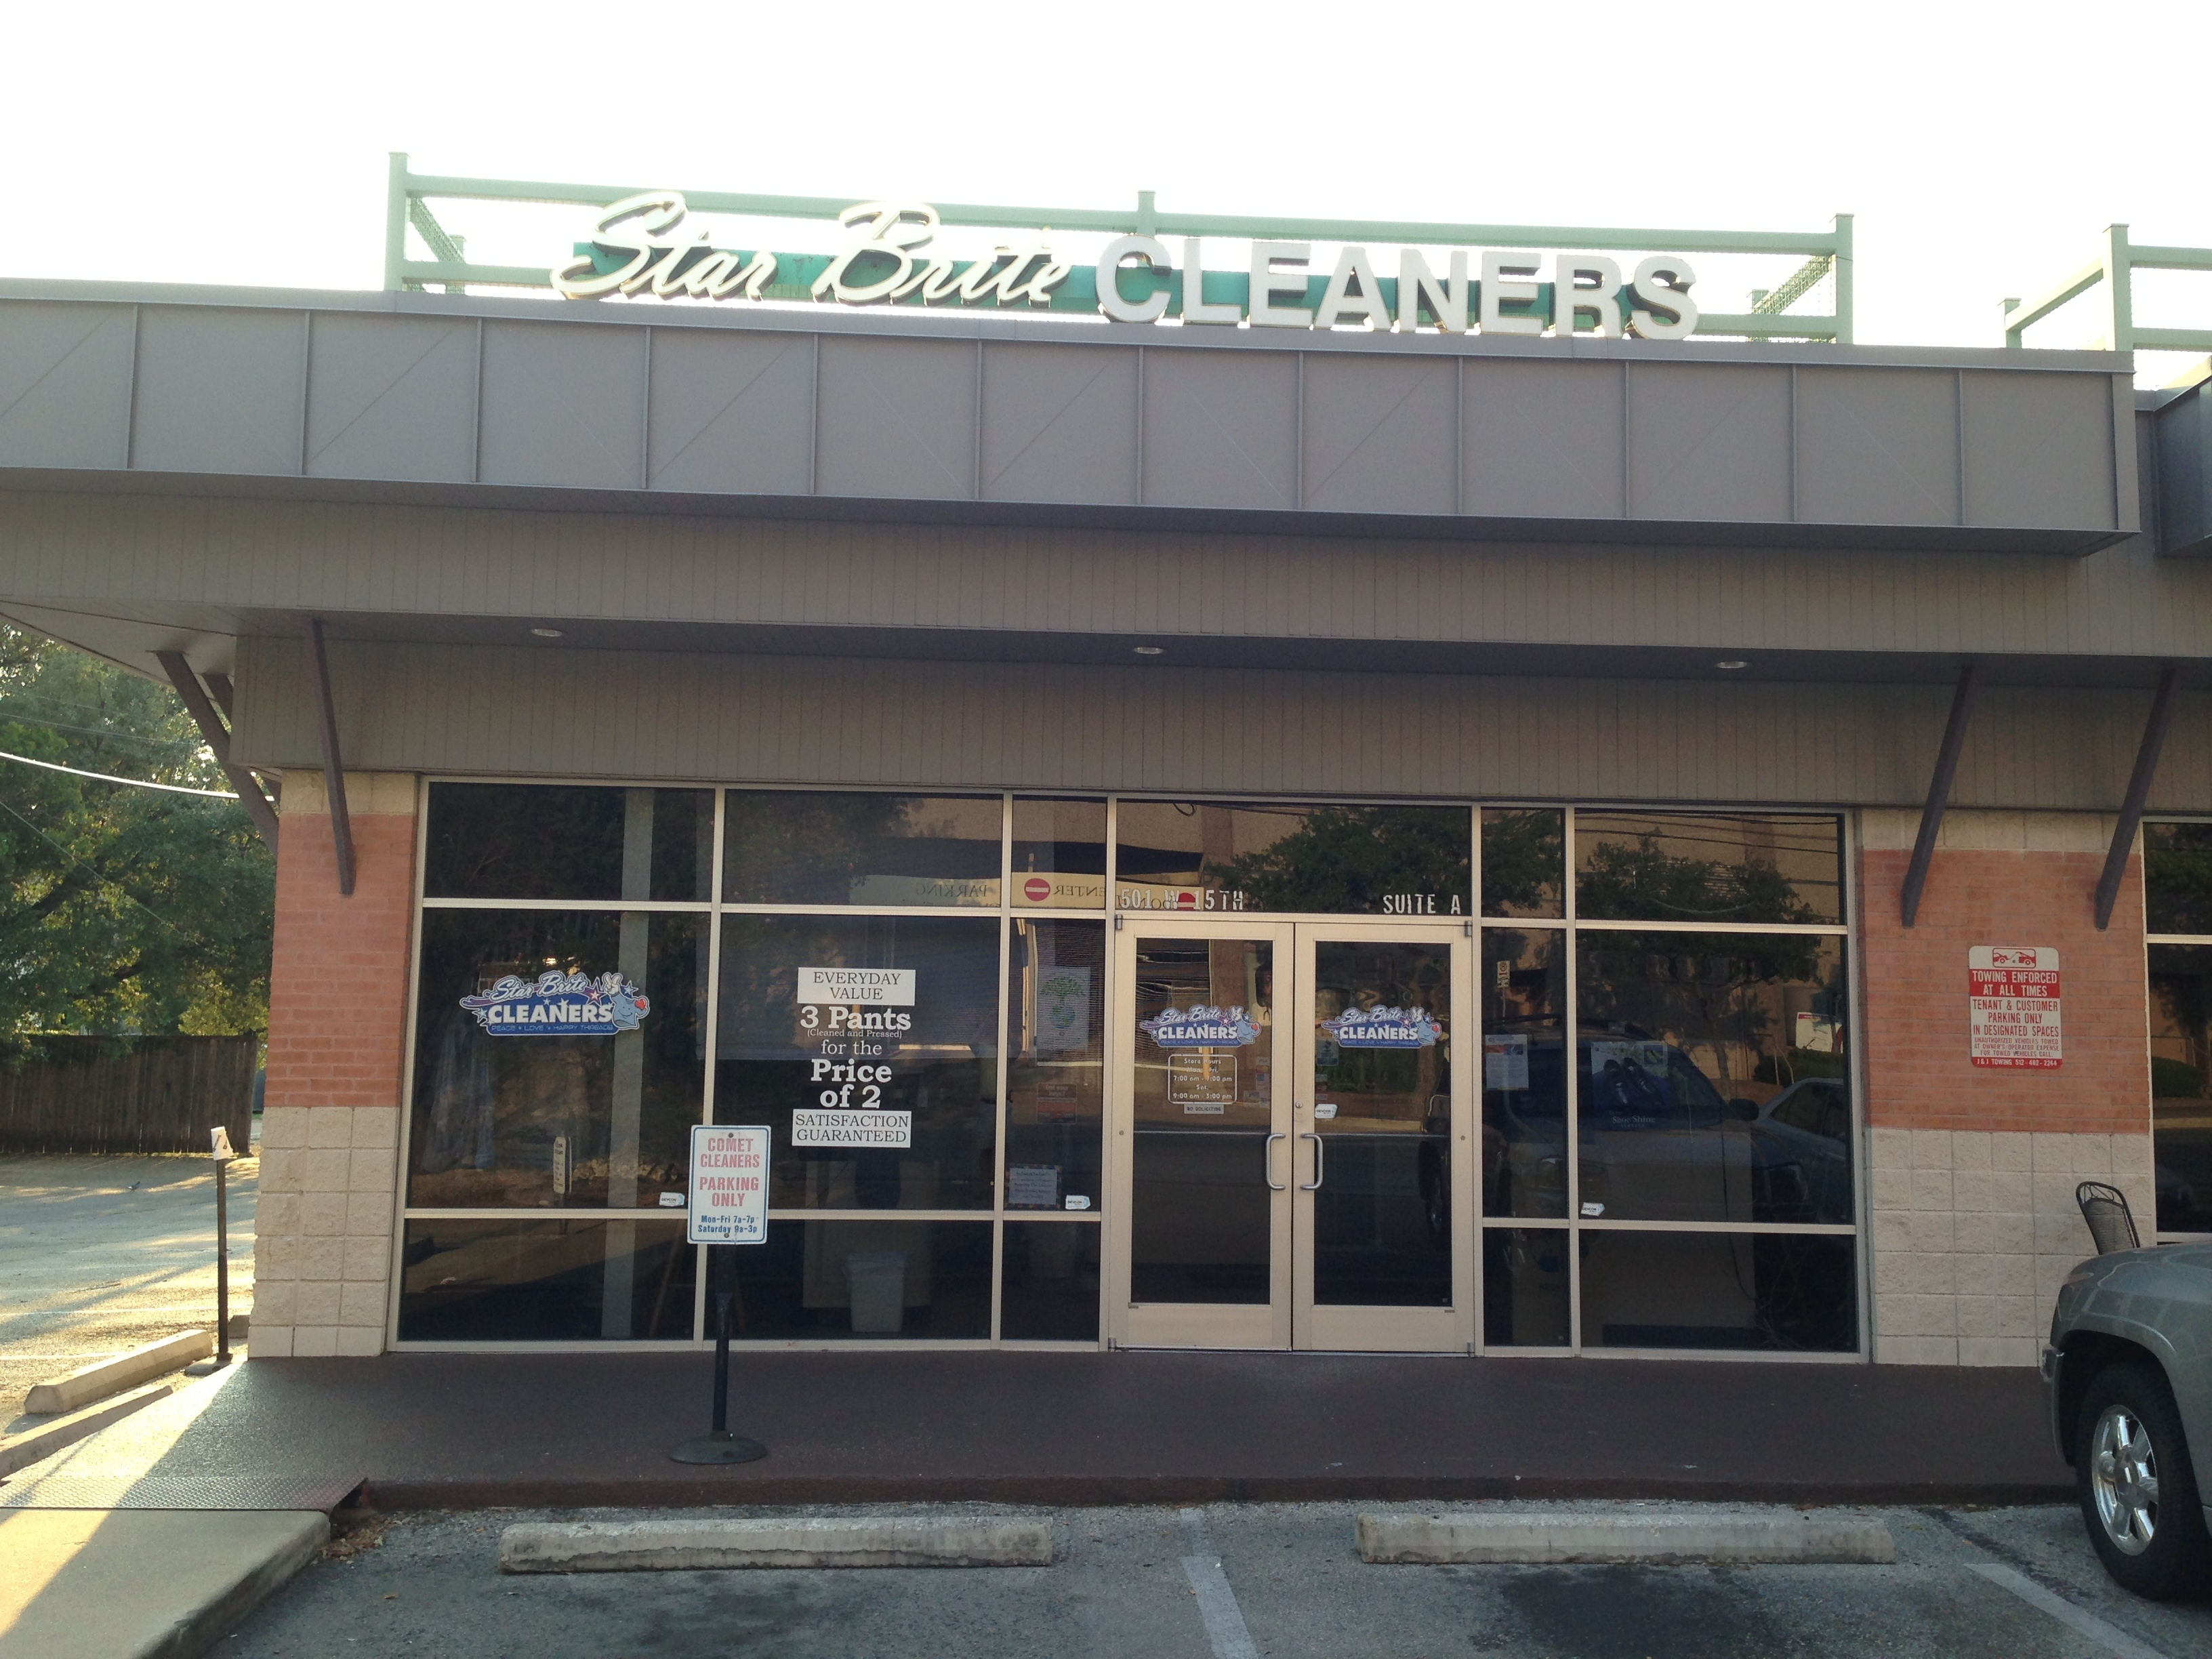 The Joint Chiropractic Gilbert, AZ is located on the Northeast corner of San Tan Village Parkway and Market Street, across from Bed, Bath and Beyond, near Hand and Stone Massage, next to .